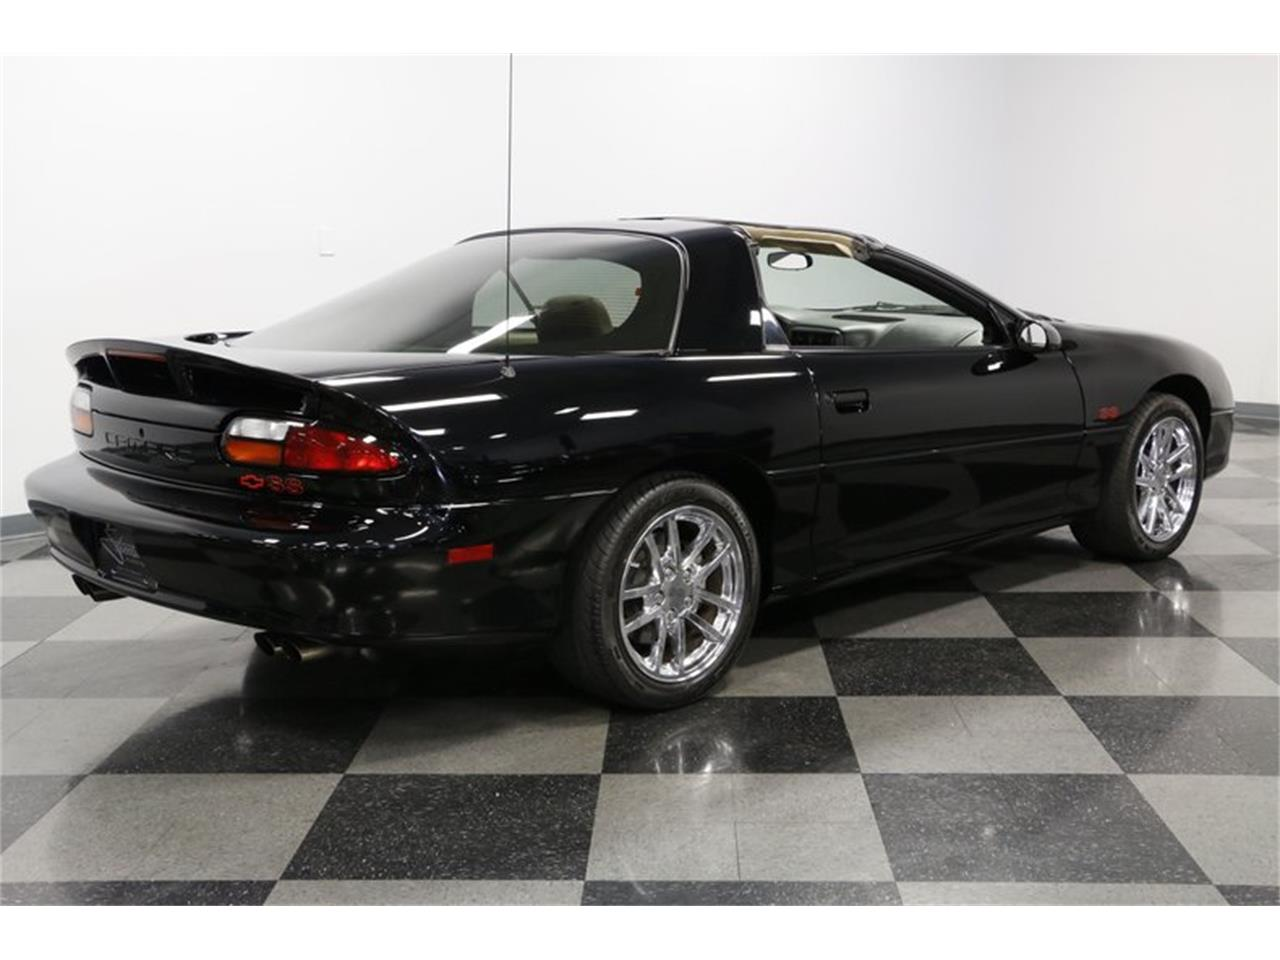 2002 Chevrolet Camaro (CC-1345036) for sale in Concord, North Carolina